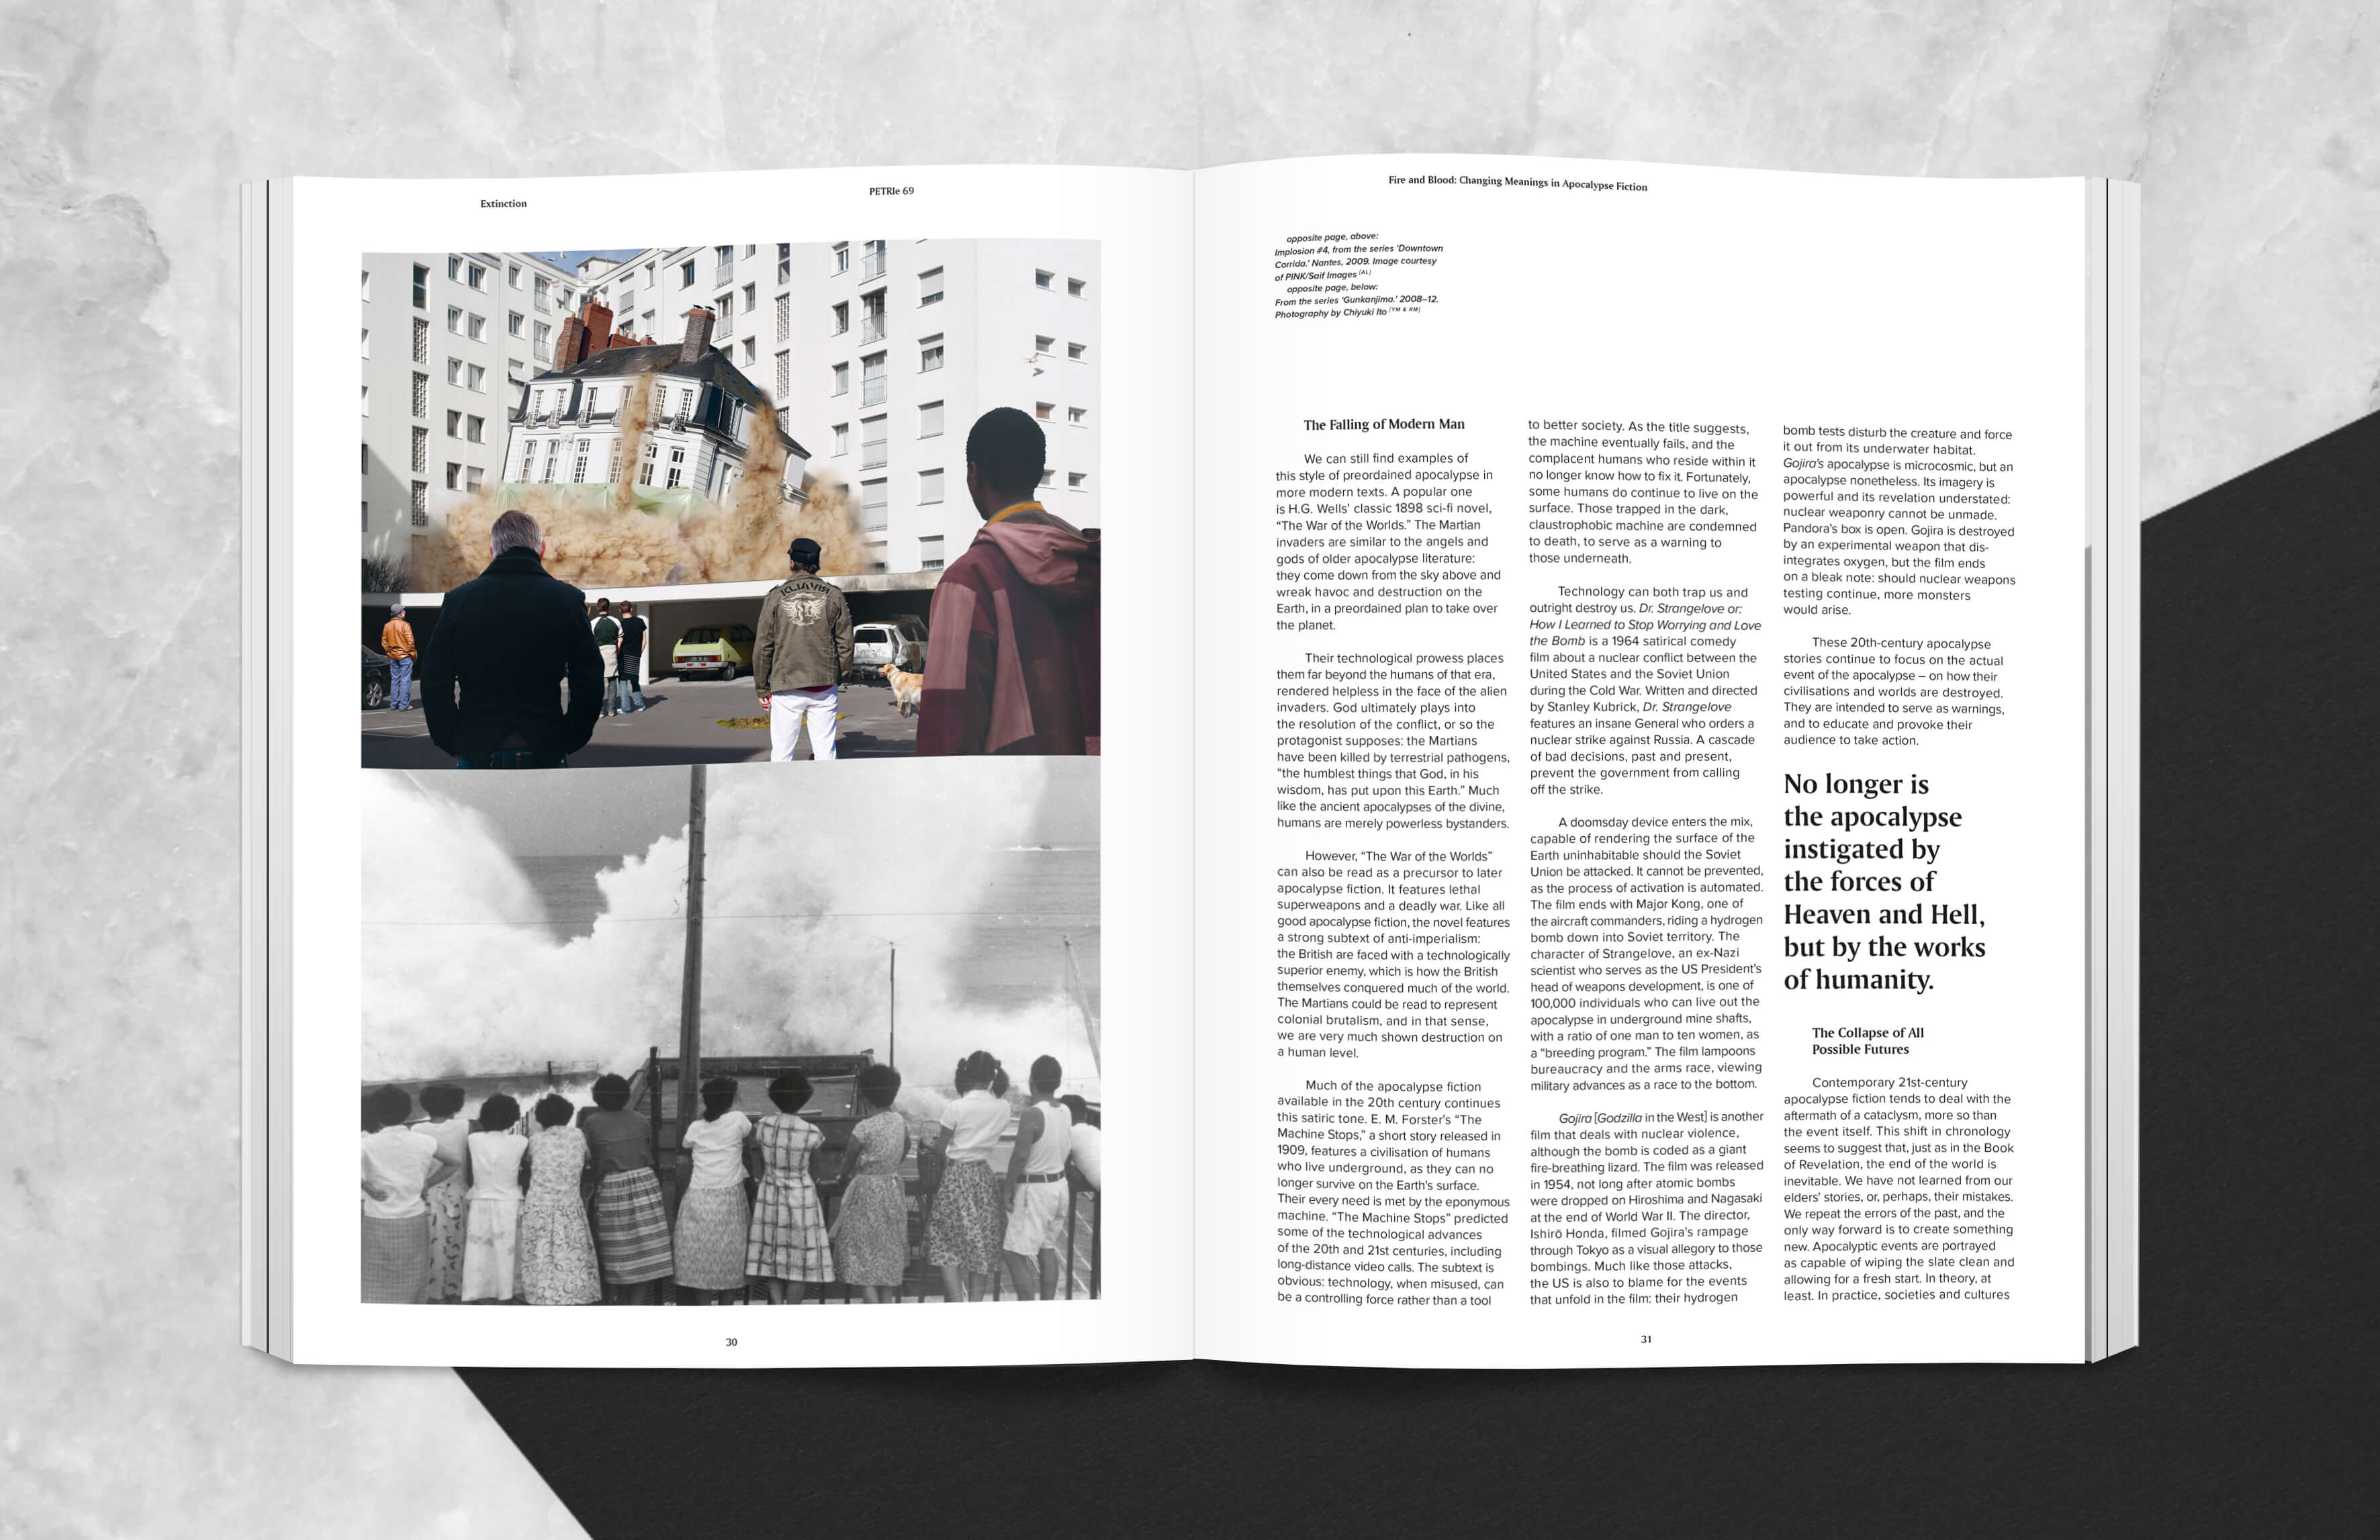 magazine spread with Written article about changing meanings in Apocalypse Fiction